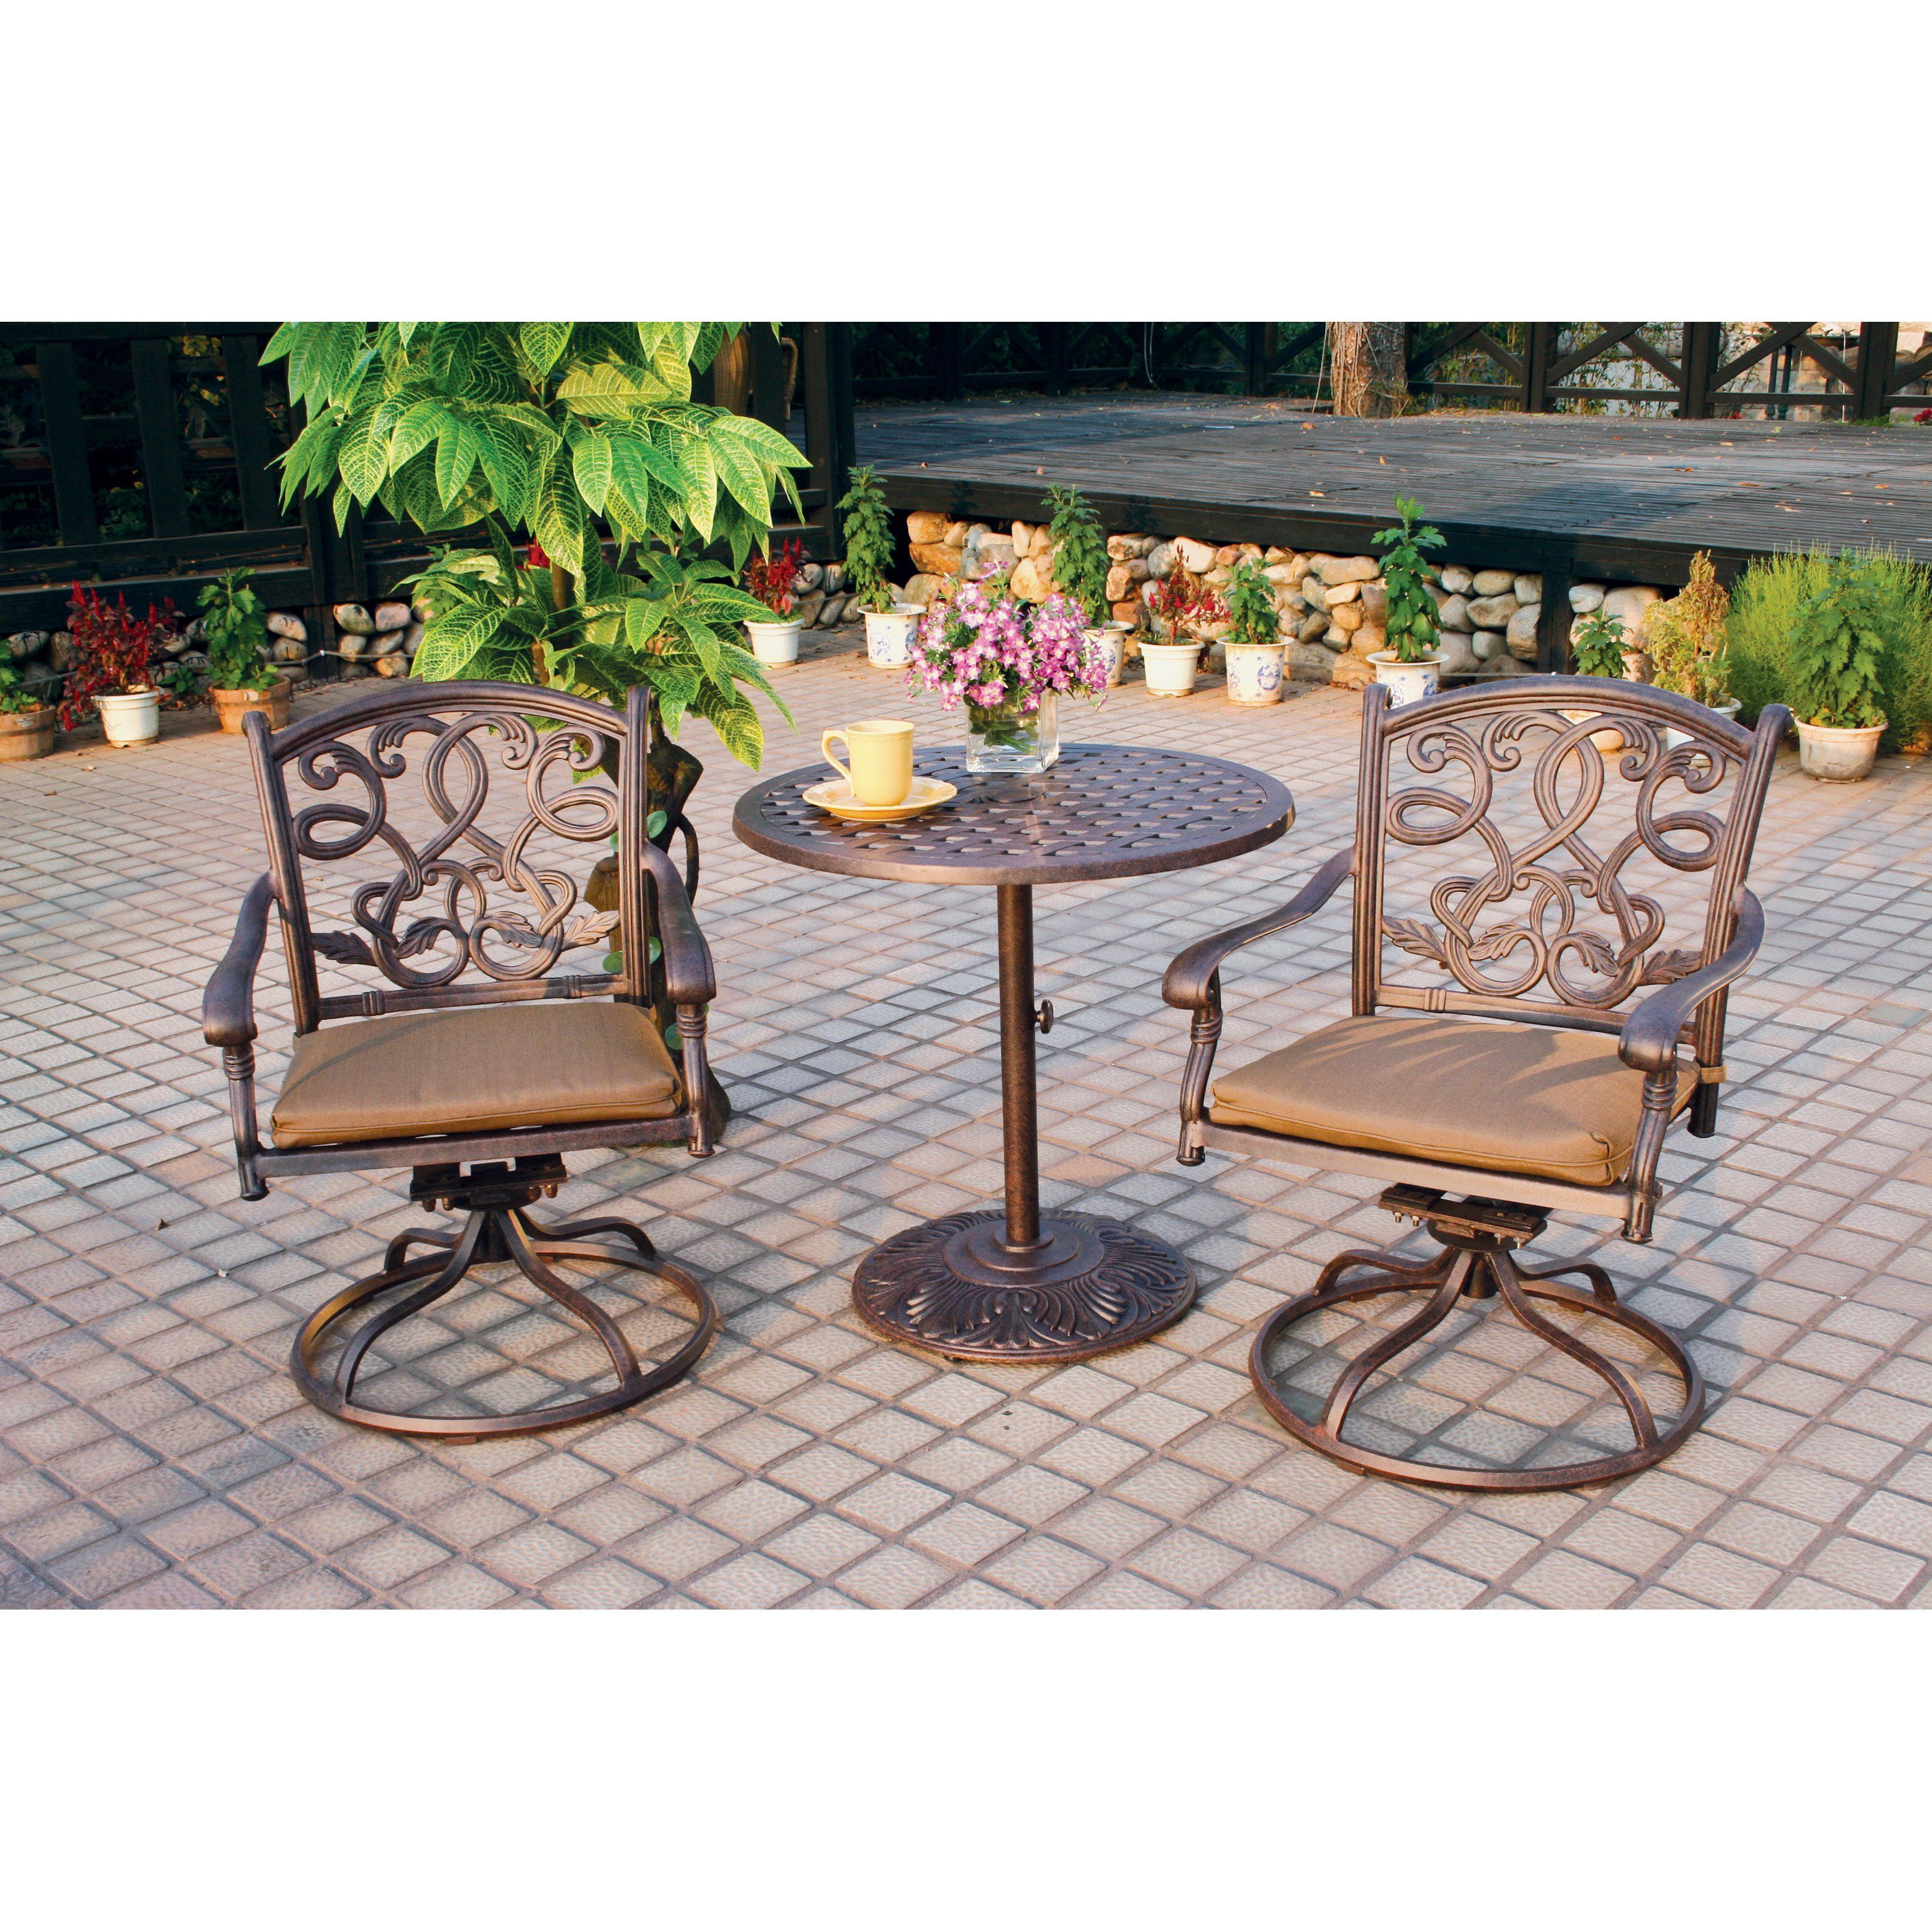 Super Outdoor Darlee Santa Monica Cast Aluminum 3 Piece 30 In Interior Design Ideas Tzicisoteloinfo